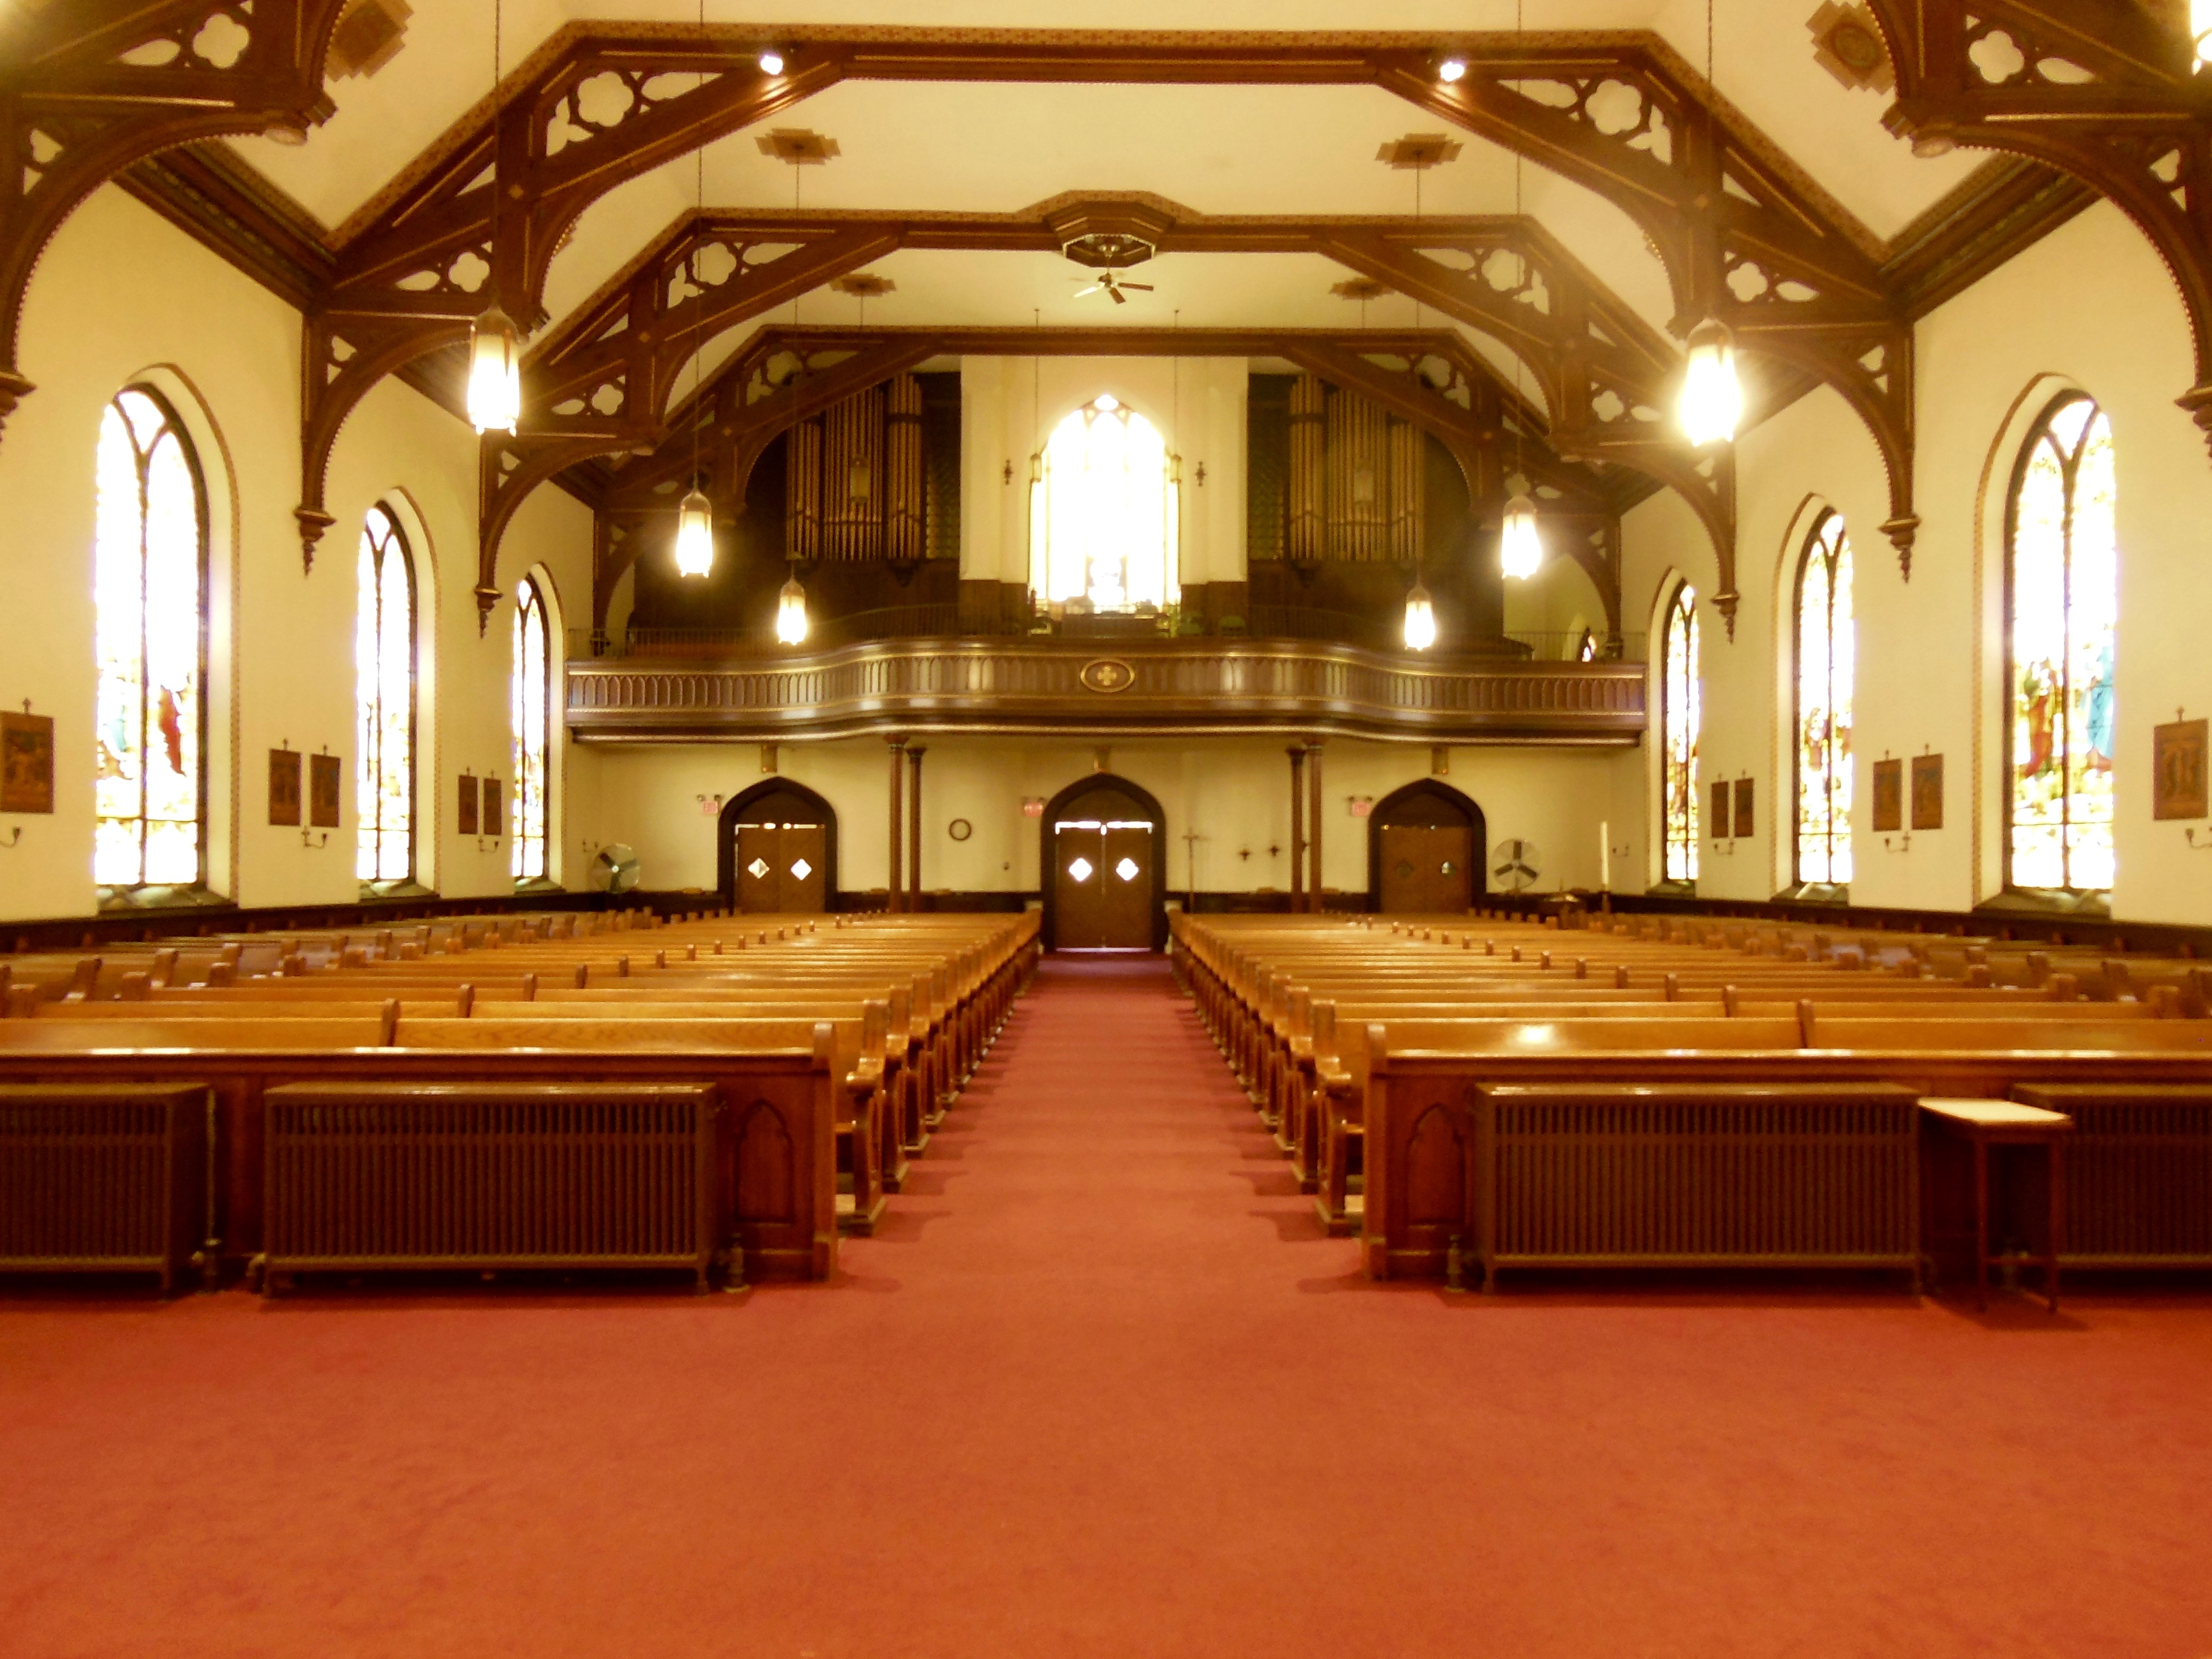 Interior from Sanctuary